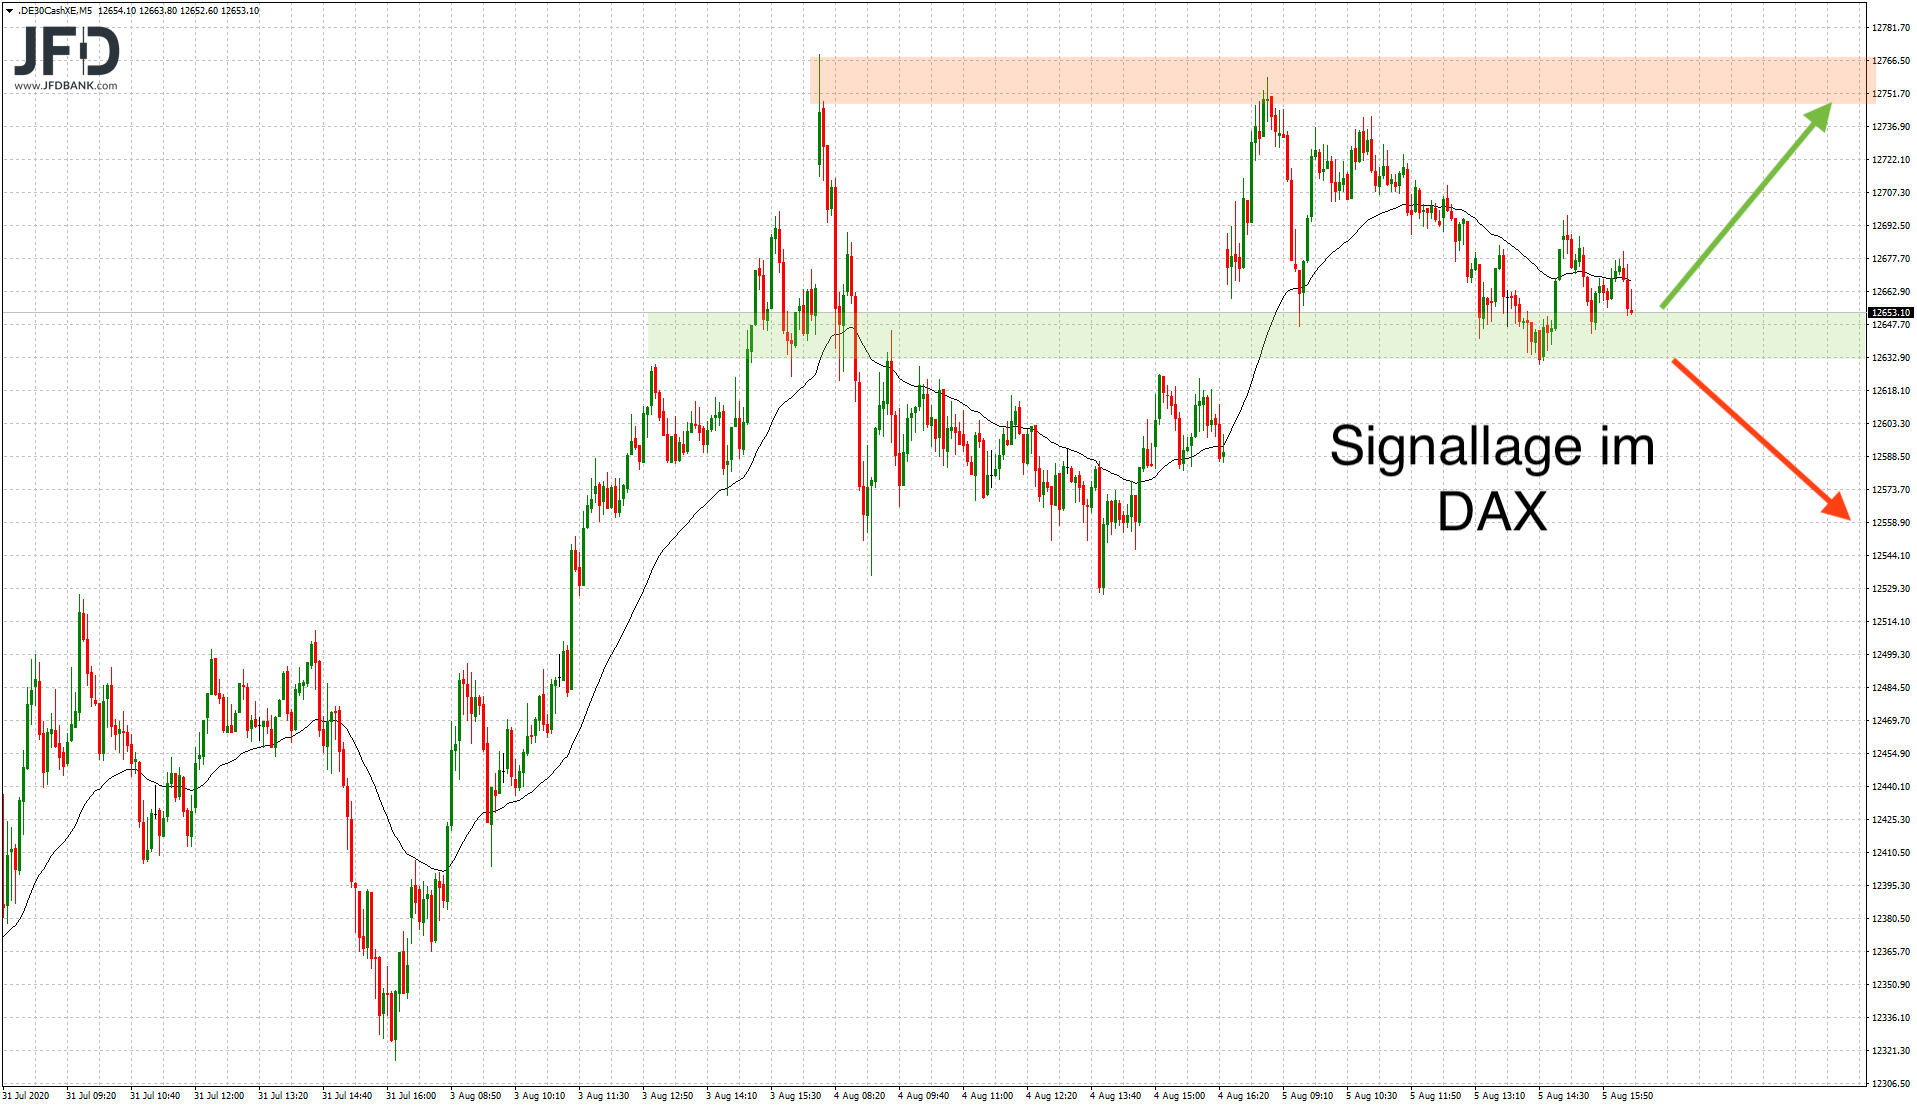 20200805_dax_xetra_signal.png